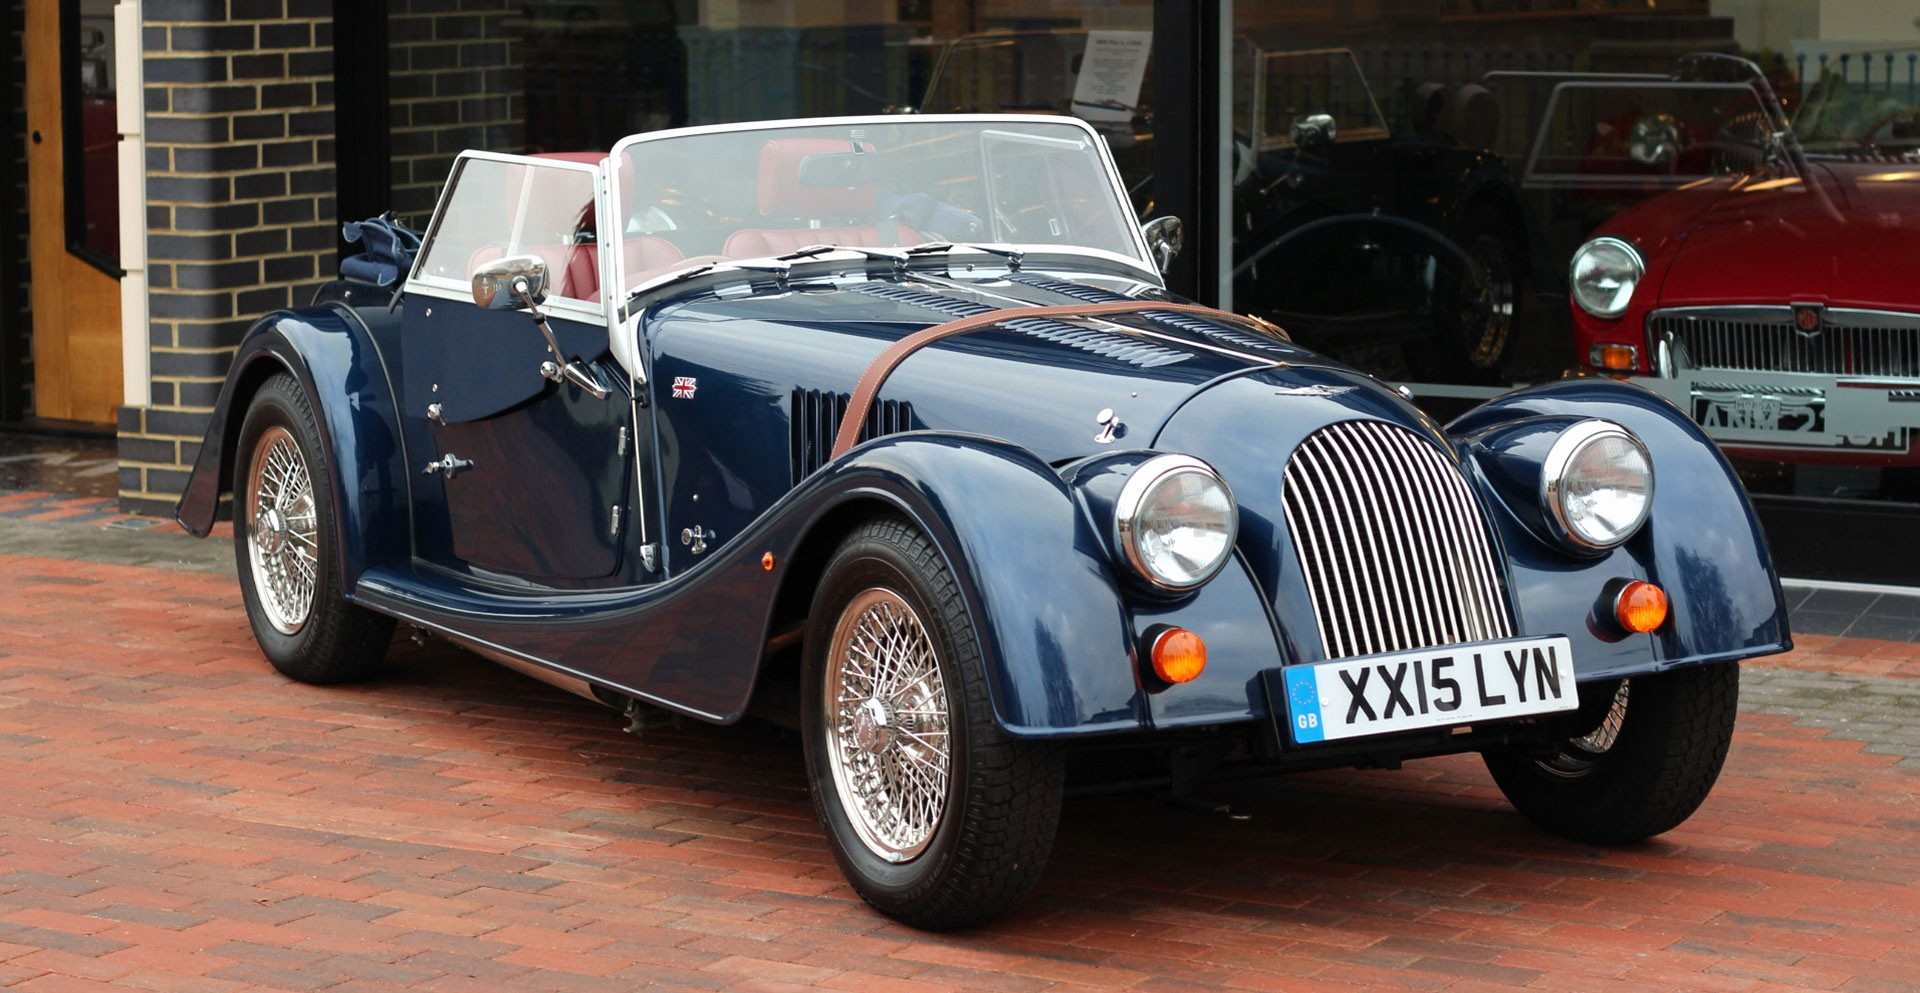 Cars Com Bill Of Sale Elegant Morgan Cars for Sale From Melvyn Rutter Ltd Morgan Main